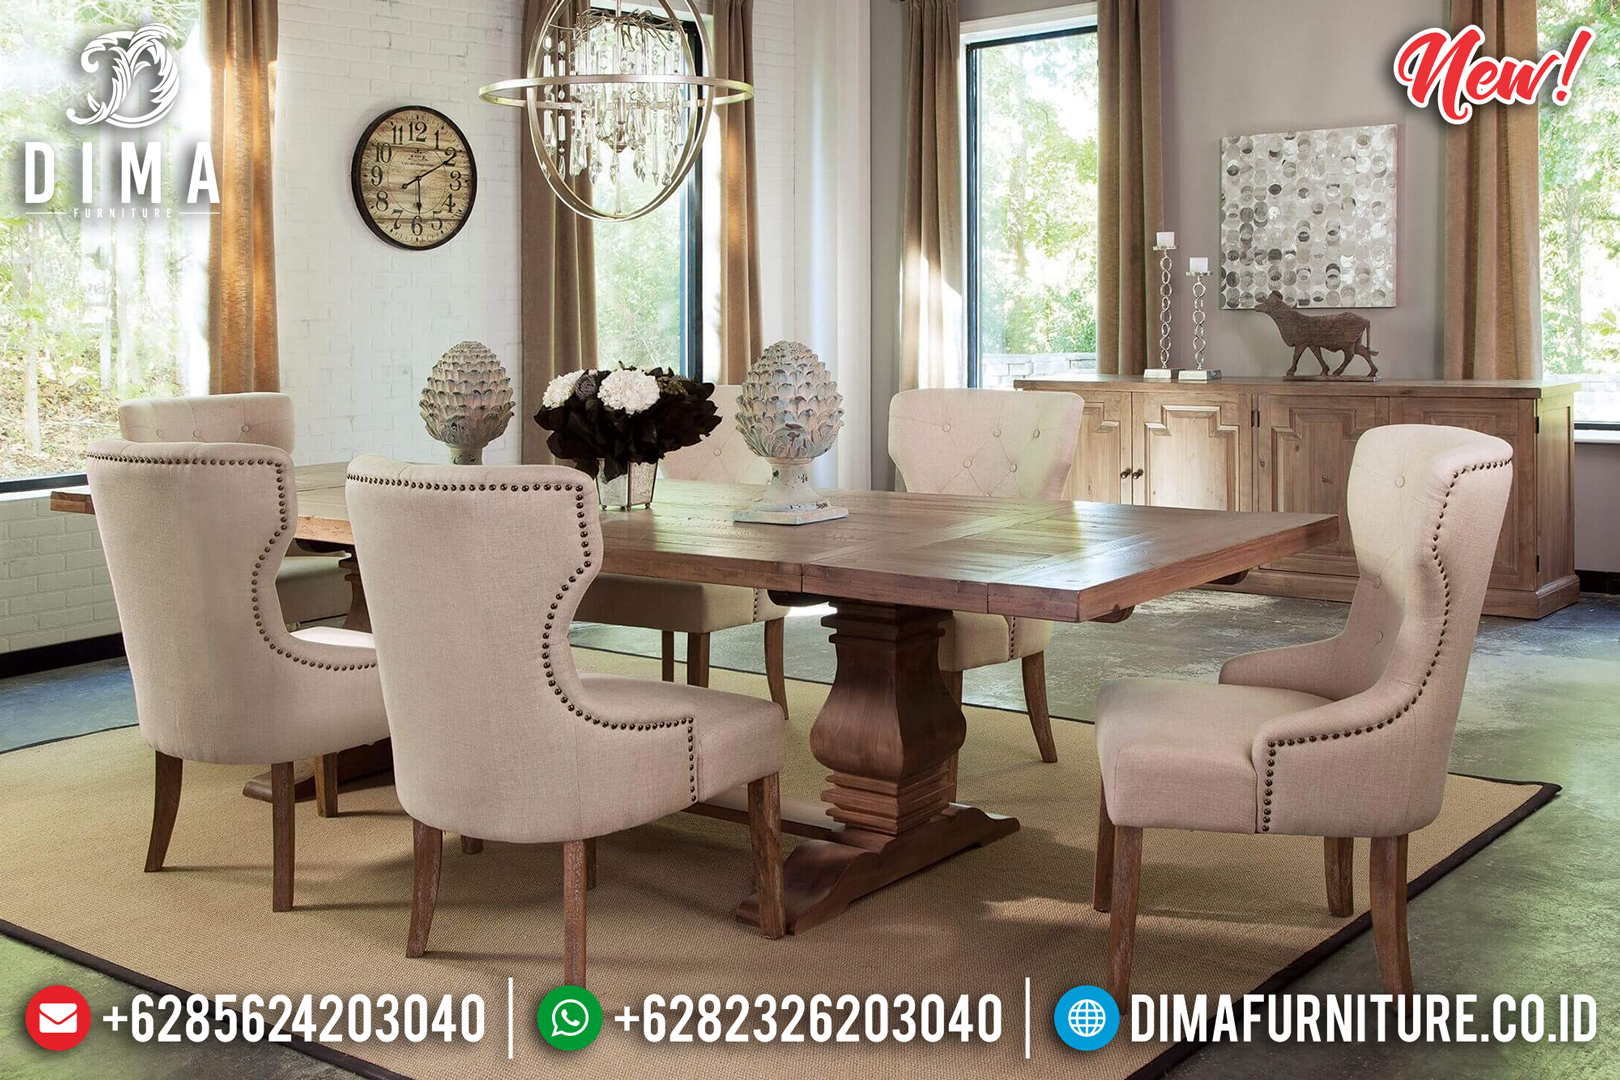 Best Item Meja Makan Minimalis Jati Jepara Natural Beauty Concept Design DF-1442